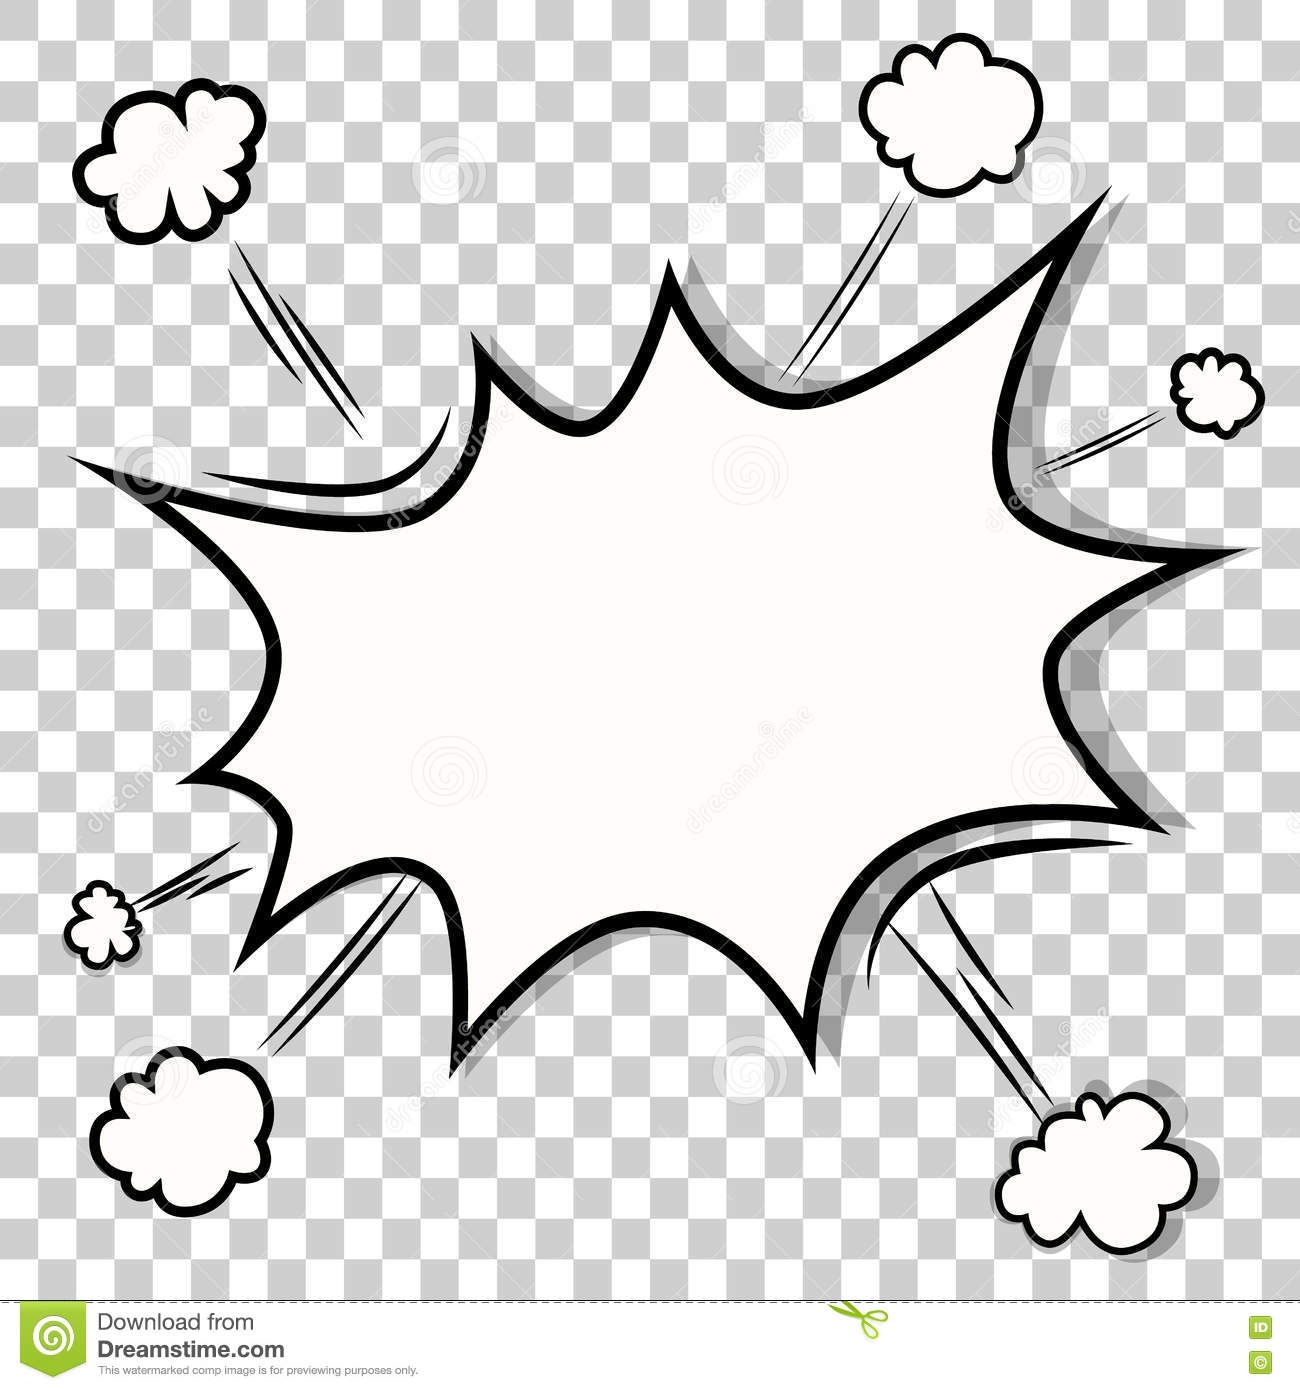 Transparent Template. Boom Comic Book Explosion Stock Vector ...